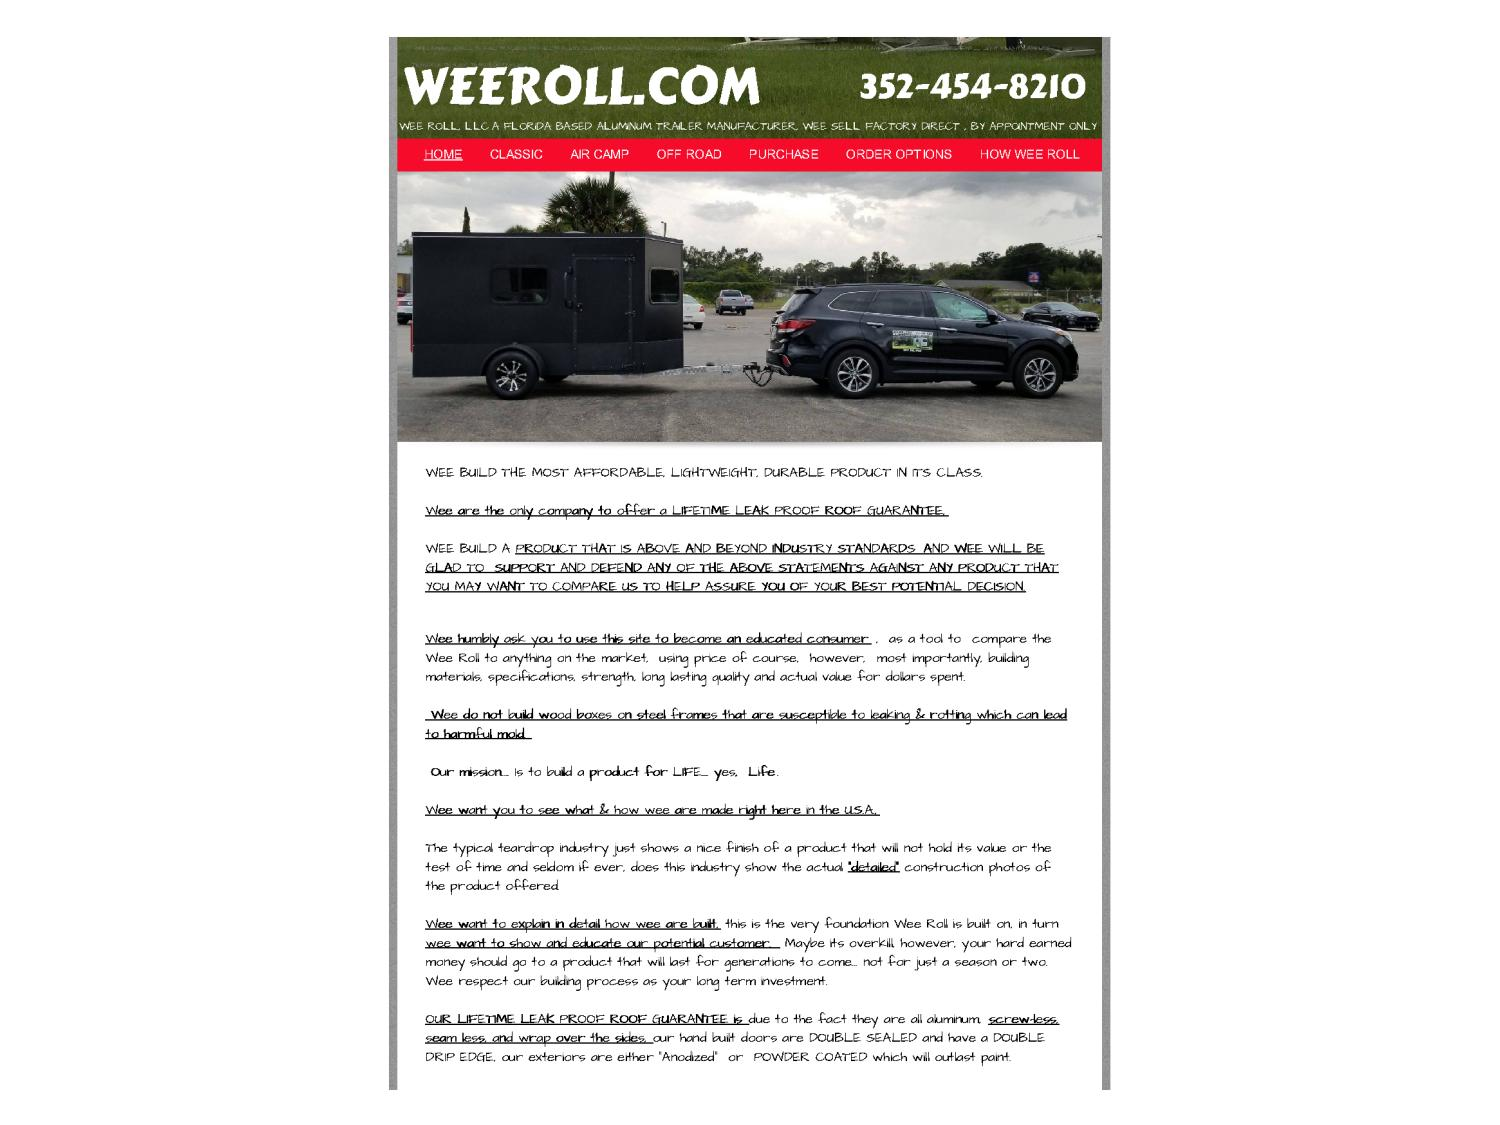 Small travel trailers for sale by weeroll usa - issuu